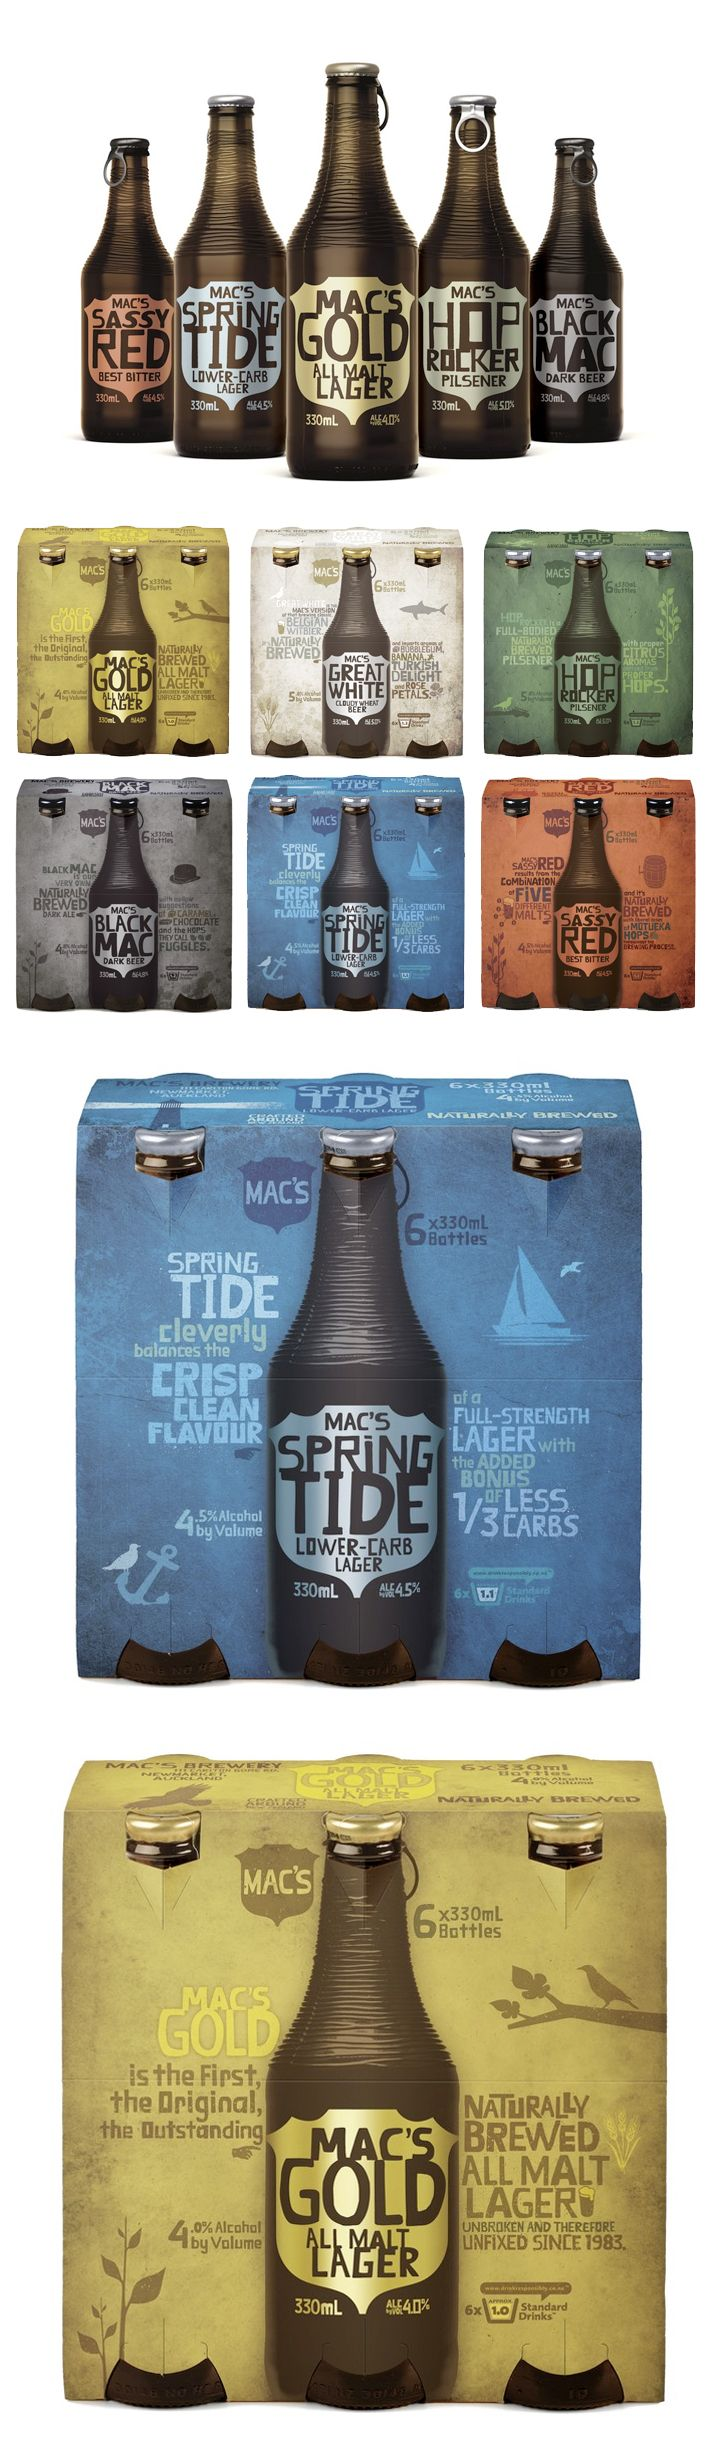 "Mac's Brewery - ""Really fun design by Shine for Mac's Brewery. The textured bottle is a nice touch."""